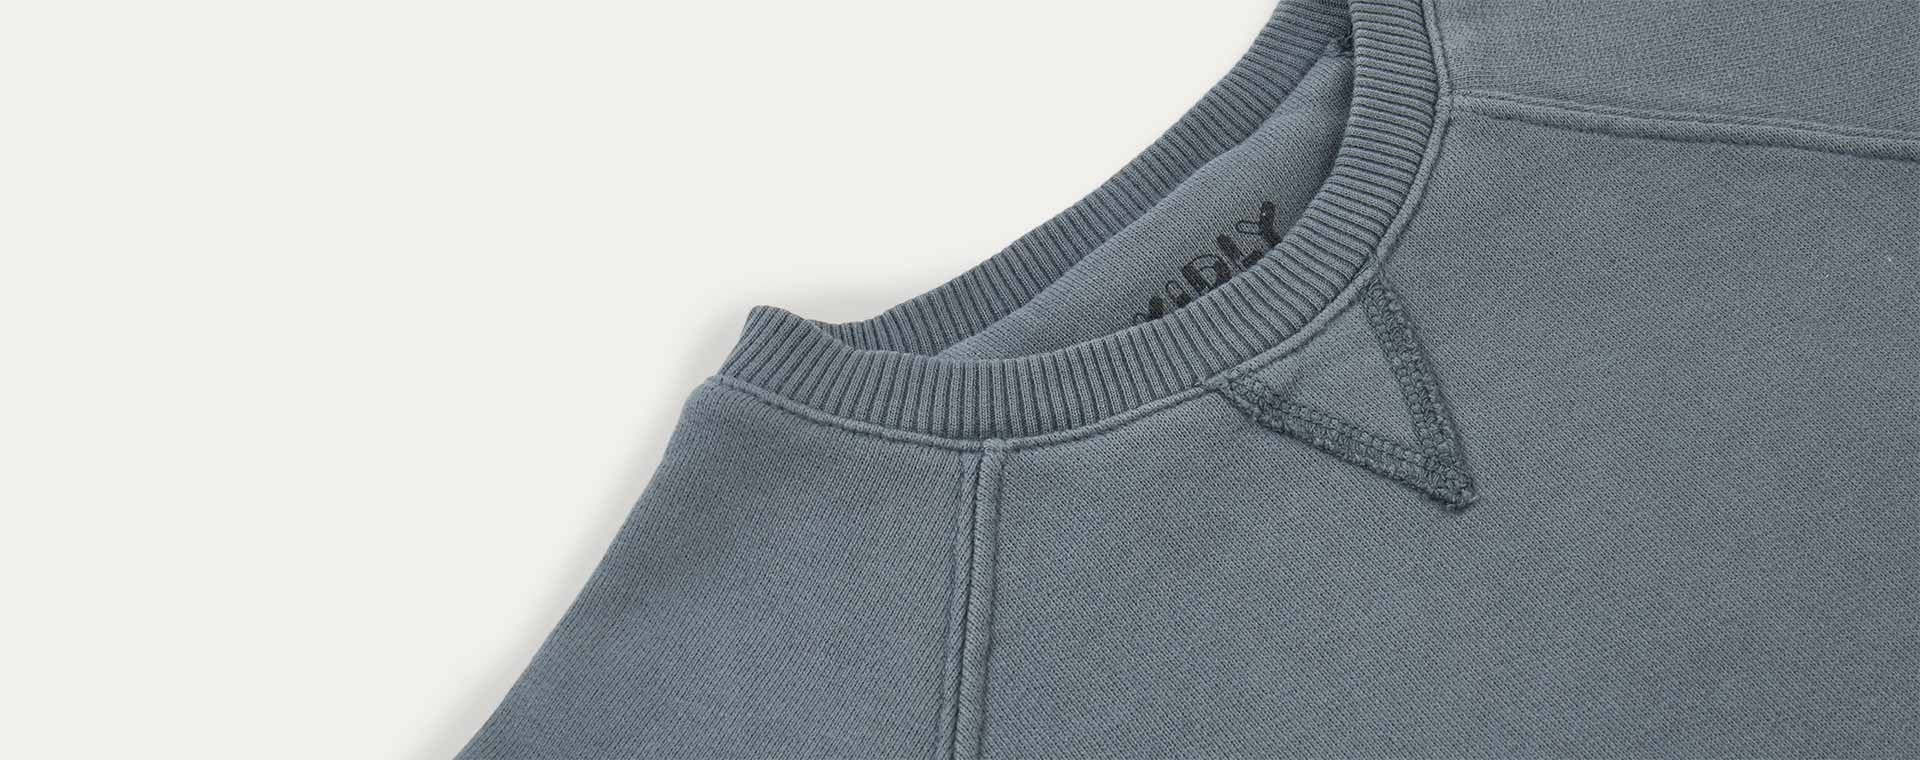 Teal KIDLY Label Pocket Sweatshirt